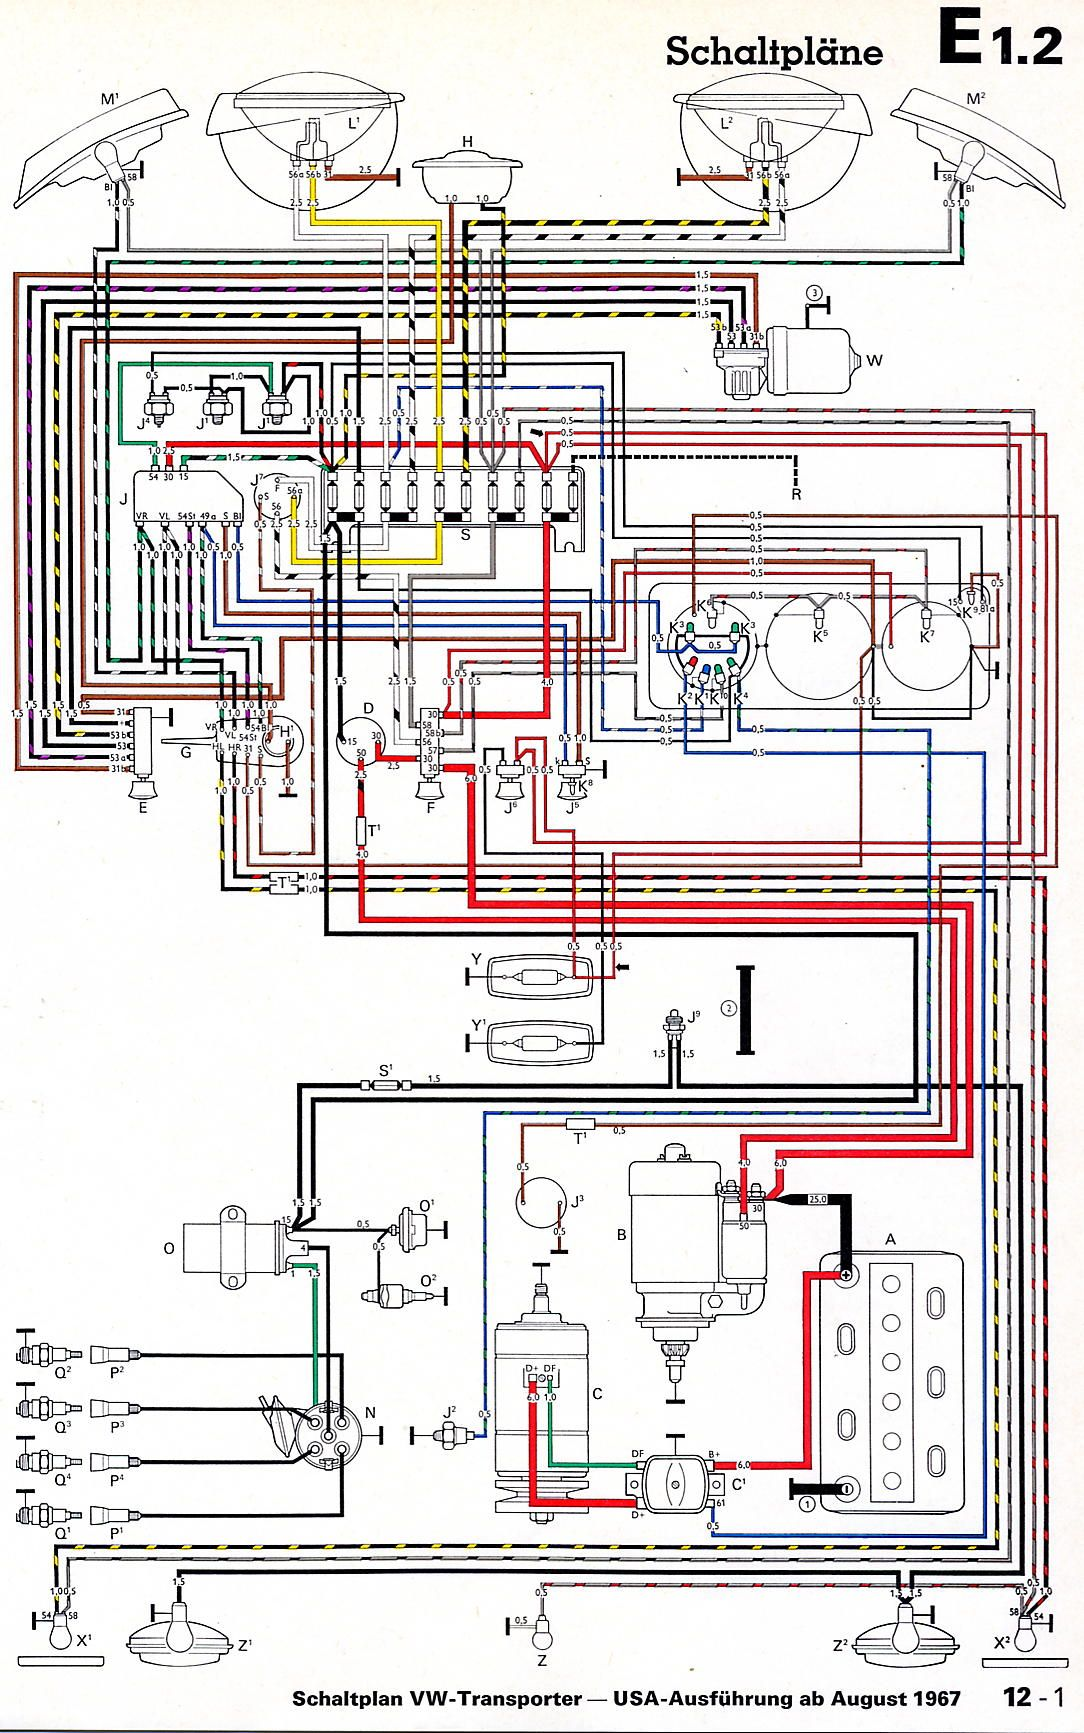 91d100b99c4459413cf9d1c4bebd2799 1949 vw wiring diagram on 1949 download wirning diagrams vw t5 wiring diagram download at panicattacktreatment.co